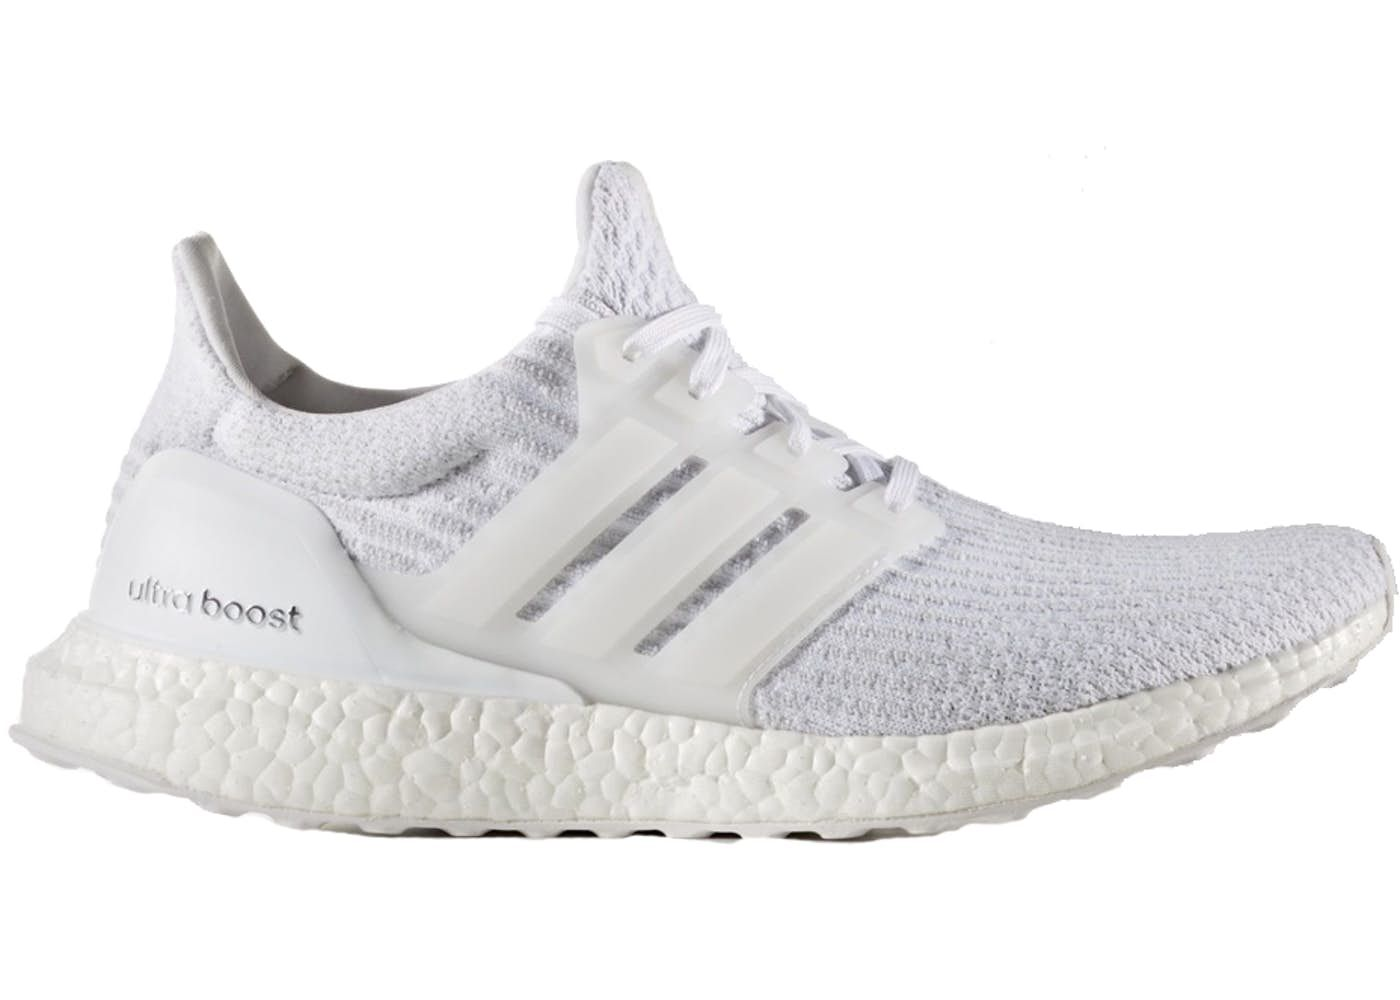 lowest price d1ddd 02bf4 adidas Ultra Boost 3.0 Triple White | Shoes | Boost shoes ...